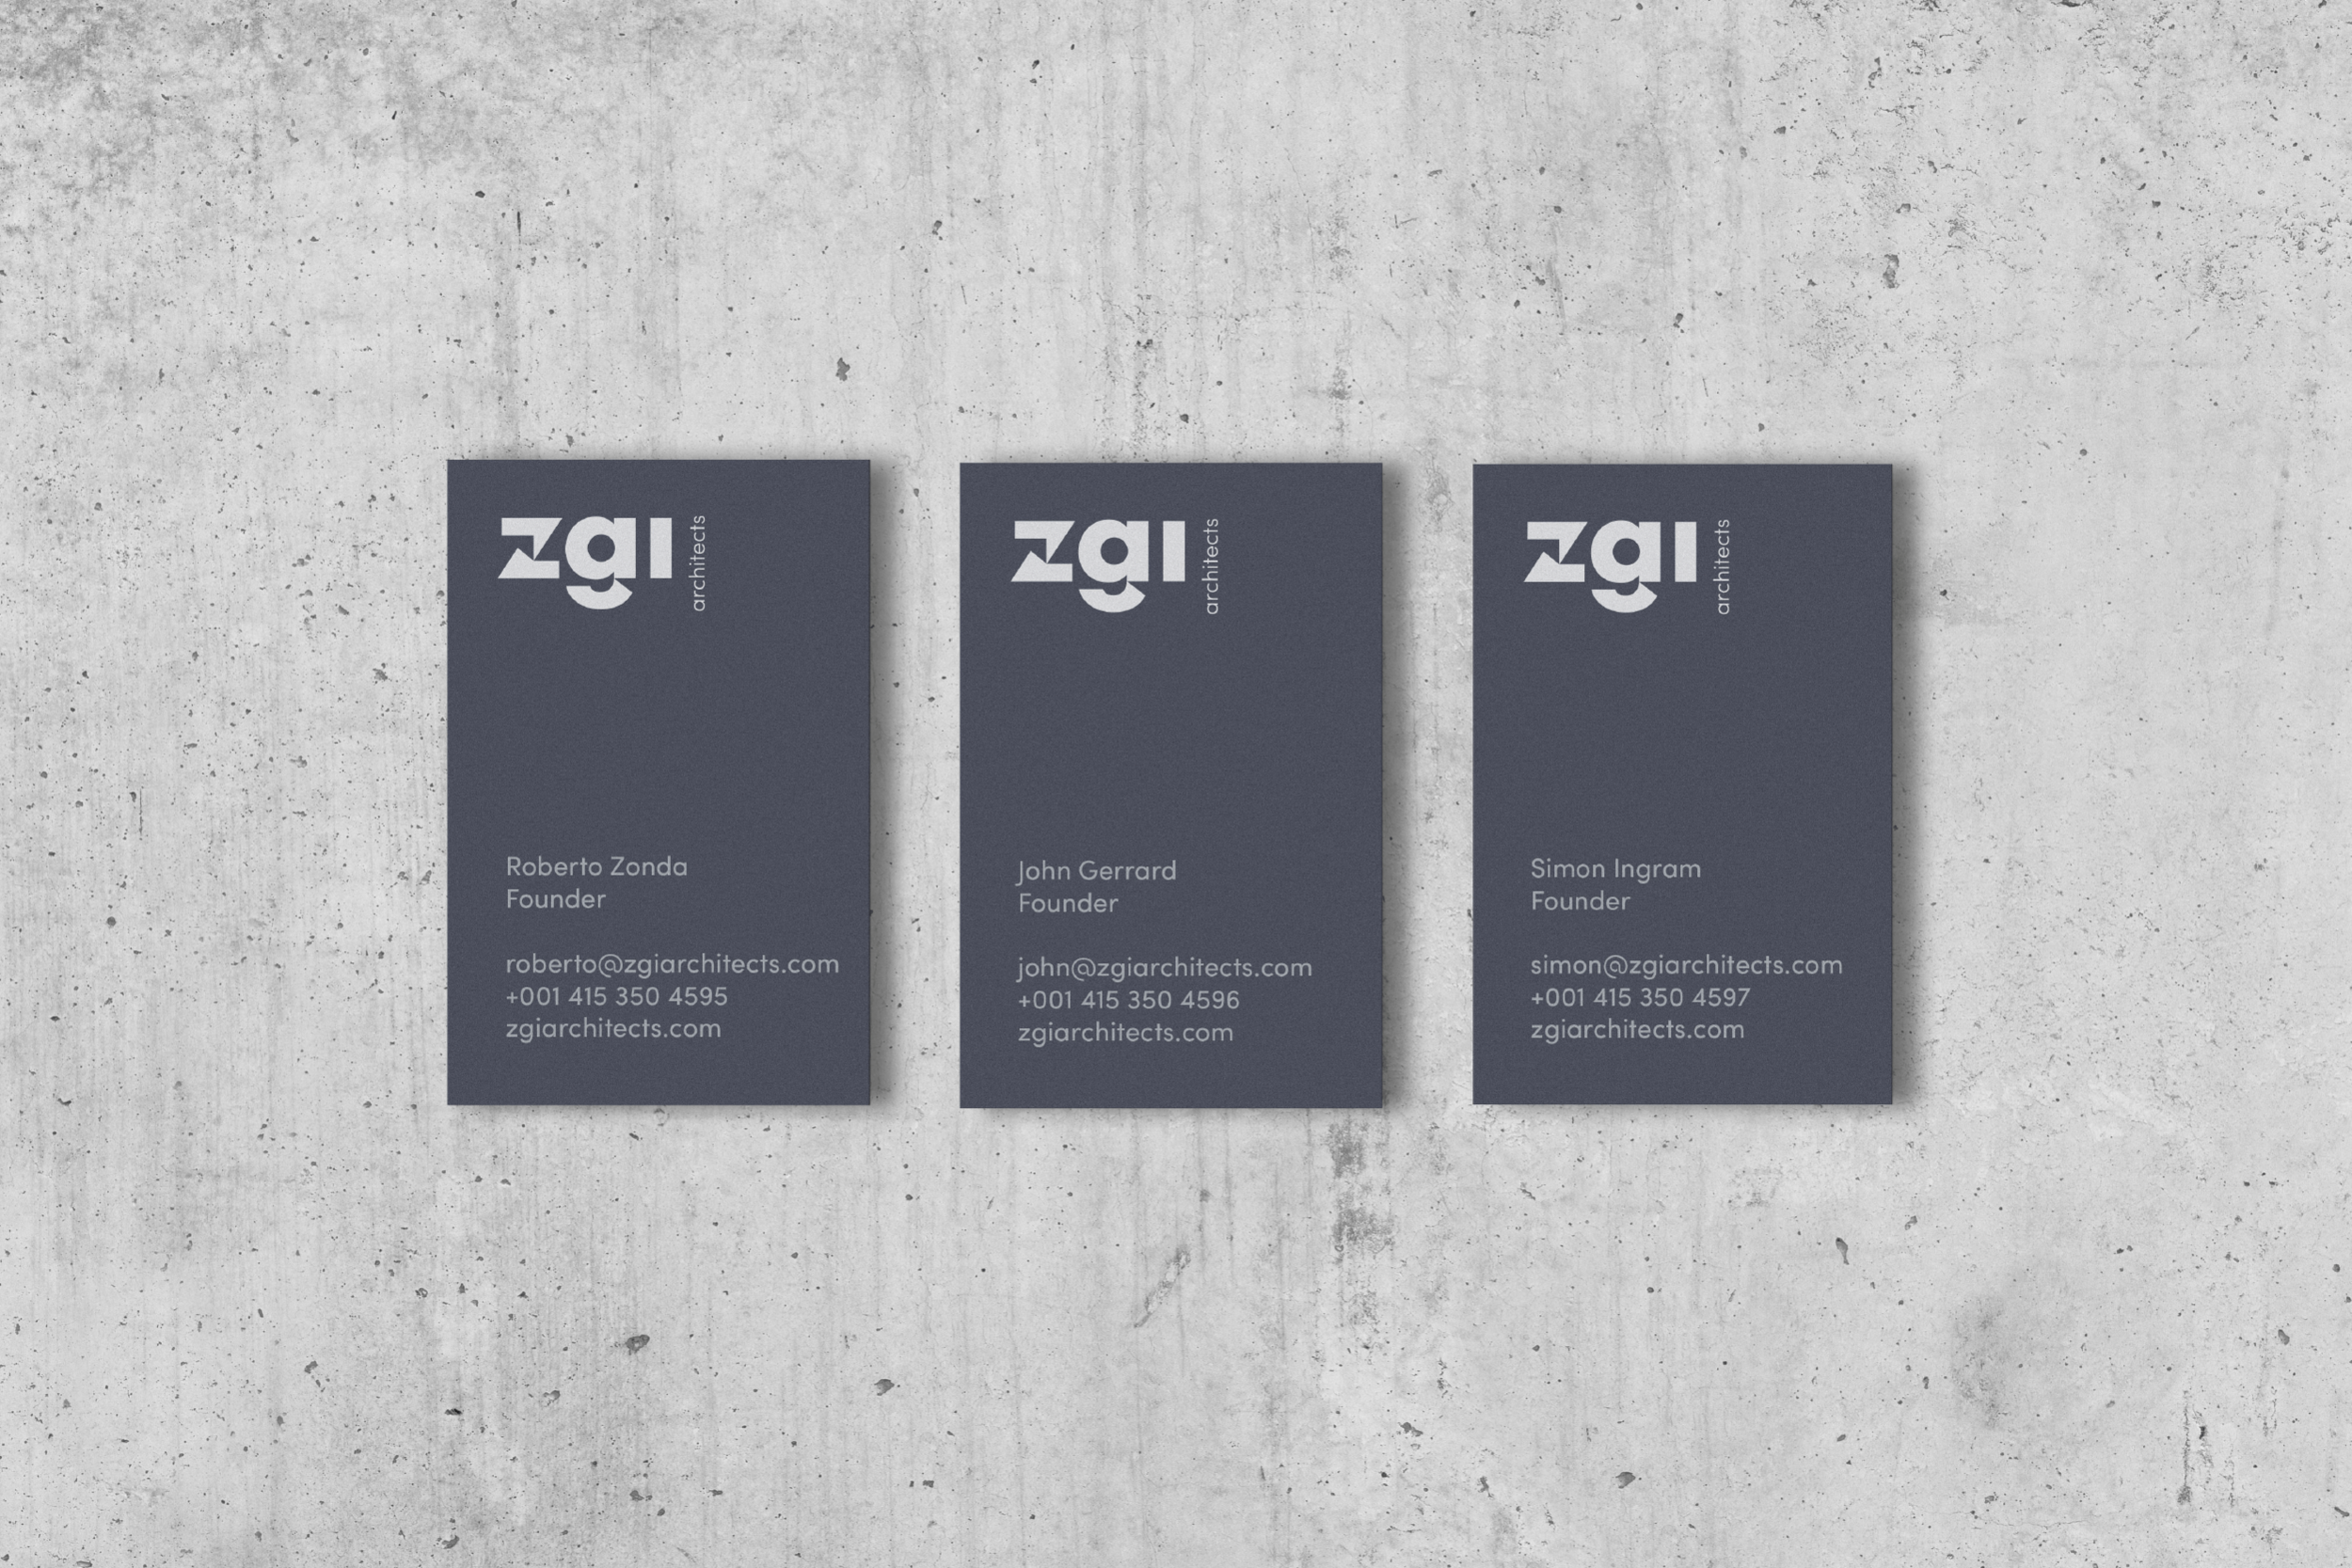 zgi-business-cards.png